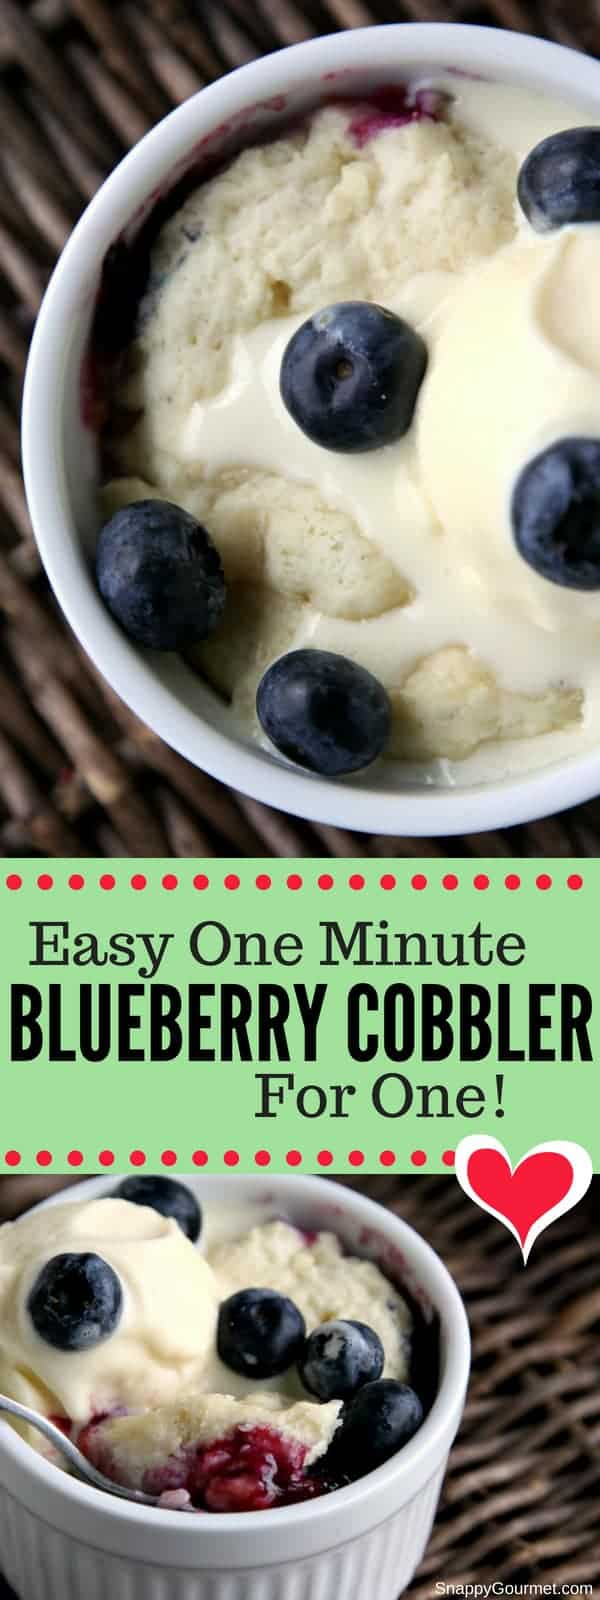 This Easy Blueberry Cobbler is ready in one minute! Learn how to make blueberry cobbler in the microwave with fresh blueberries or frozen blueberries. This homemade dessert for one is a simple treat for those sugar cravings. #Cobbler #Dessert #Blueberries #SnappyGourmet #Summer #Berries #Fruit #Yum #SweetTooth #Easy #Homemade